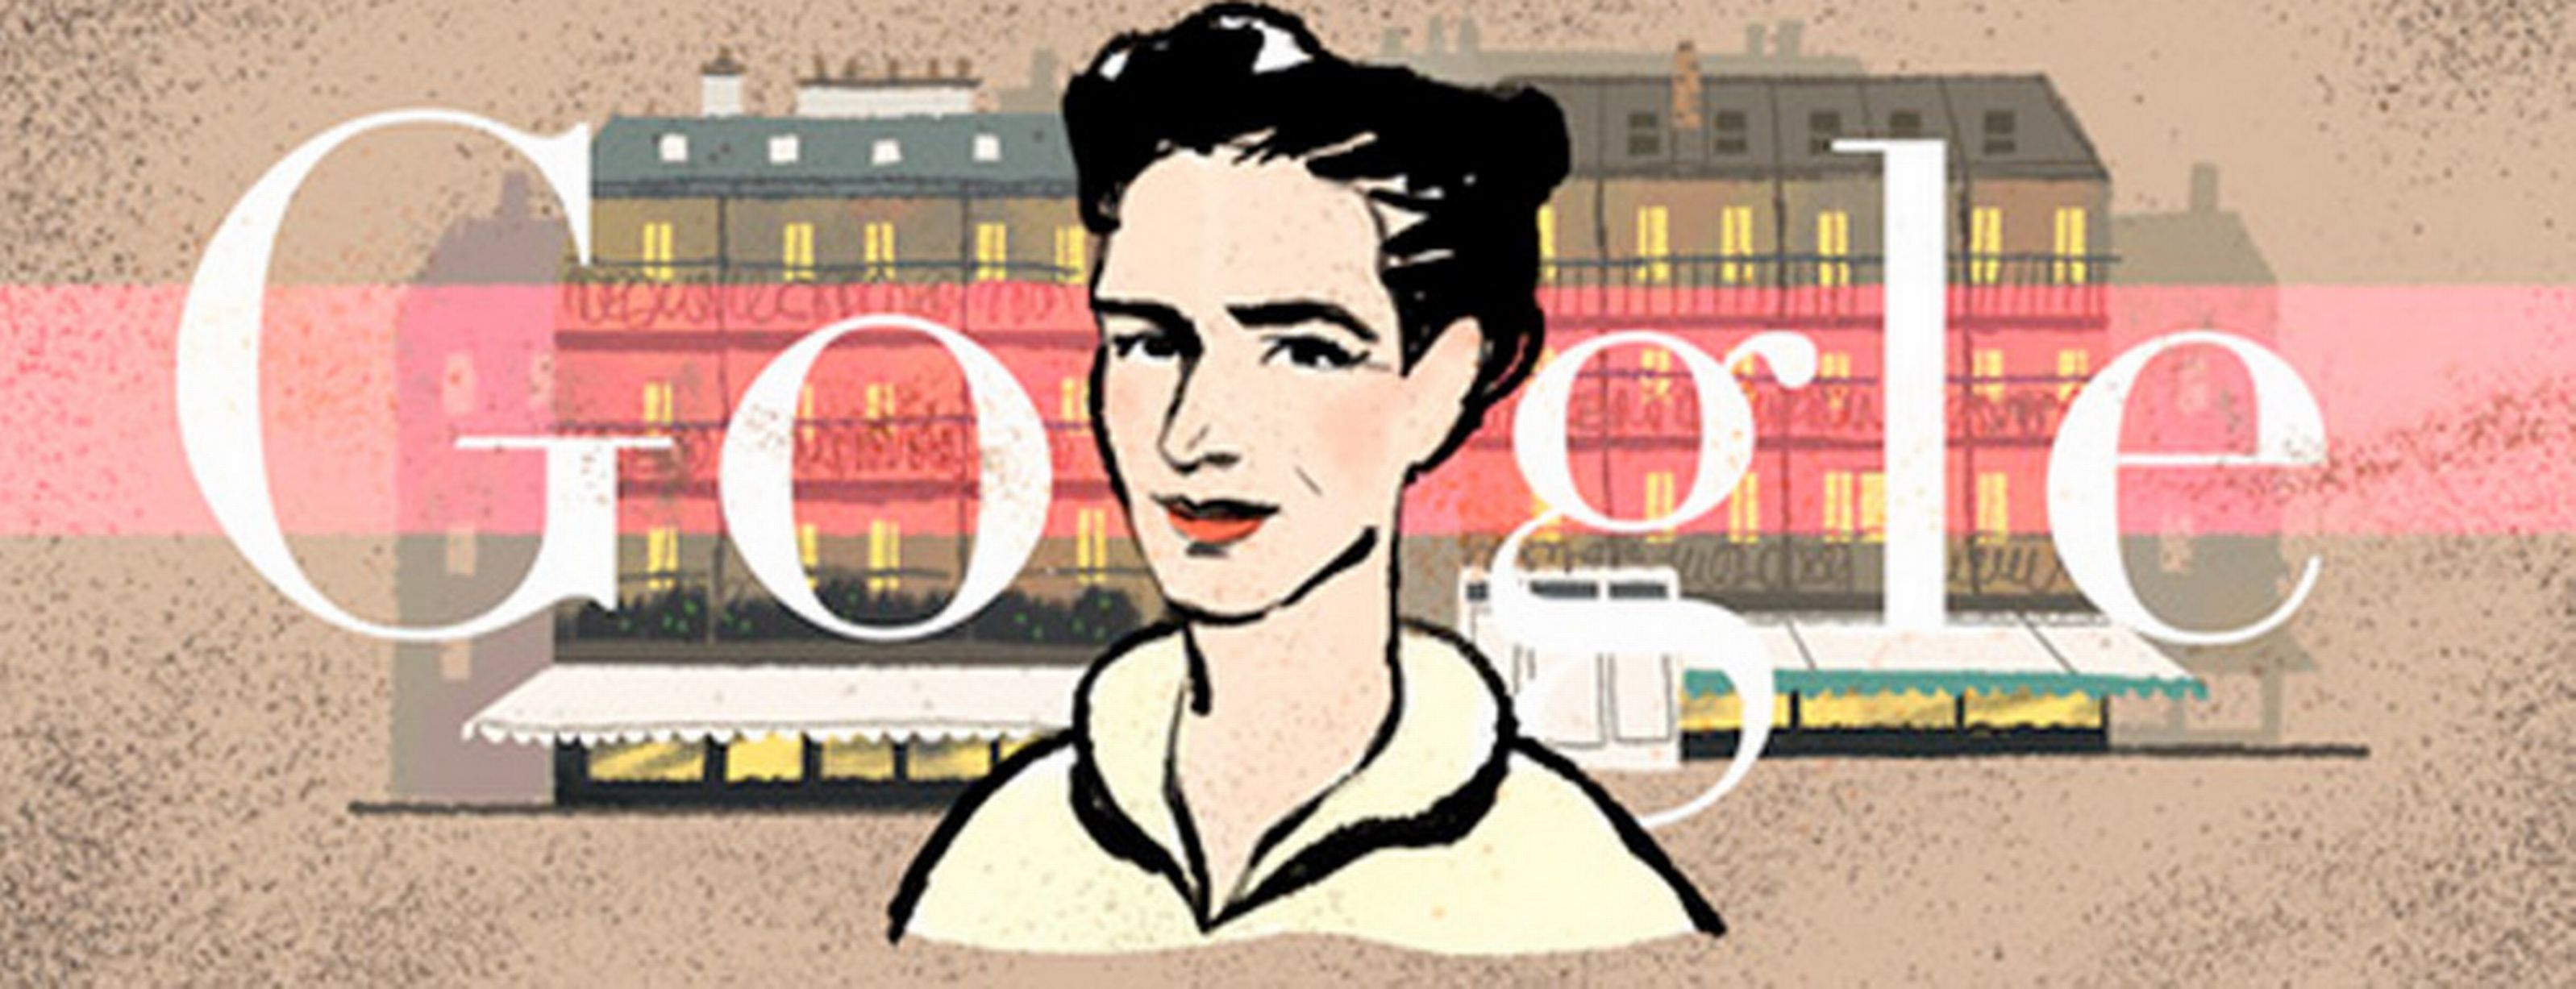 John venns 180th birthday google doodle commemorates inventor of simone de beauvoir google doodle ccuart Gallery